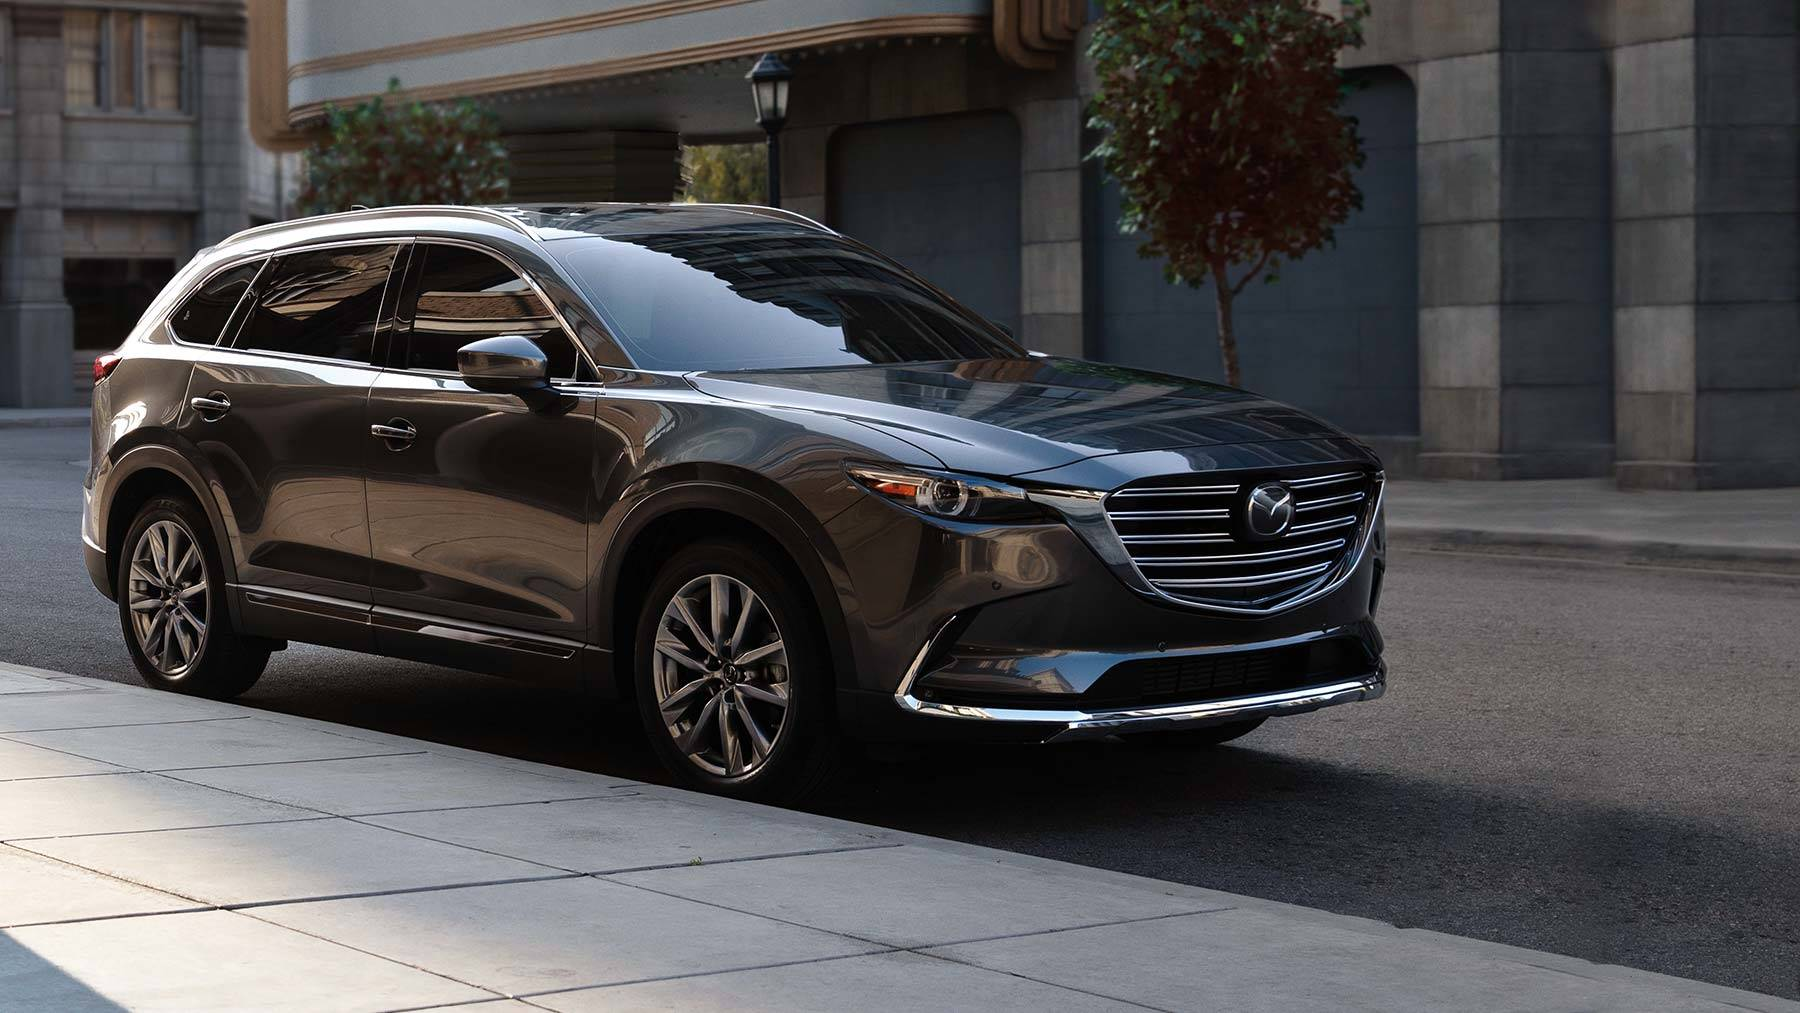 2019 Mazda CX-9 for Sale near Bastrop, LA